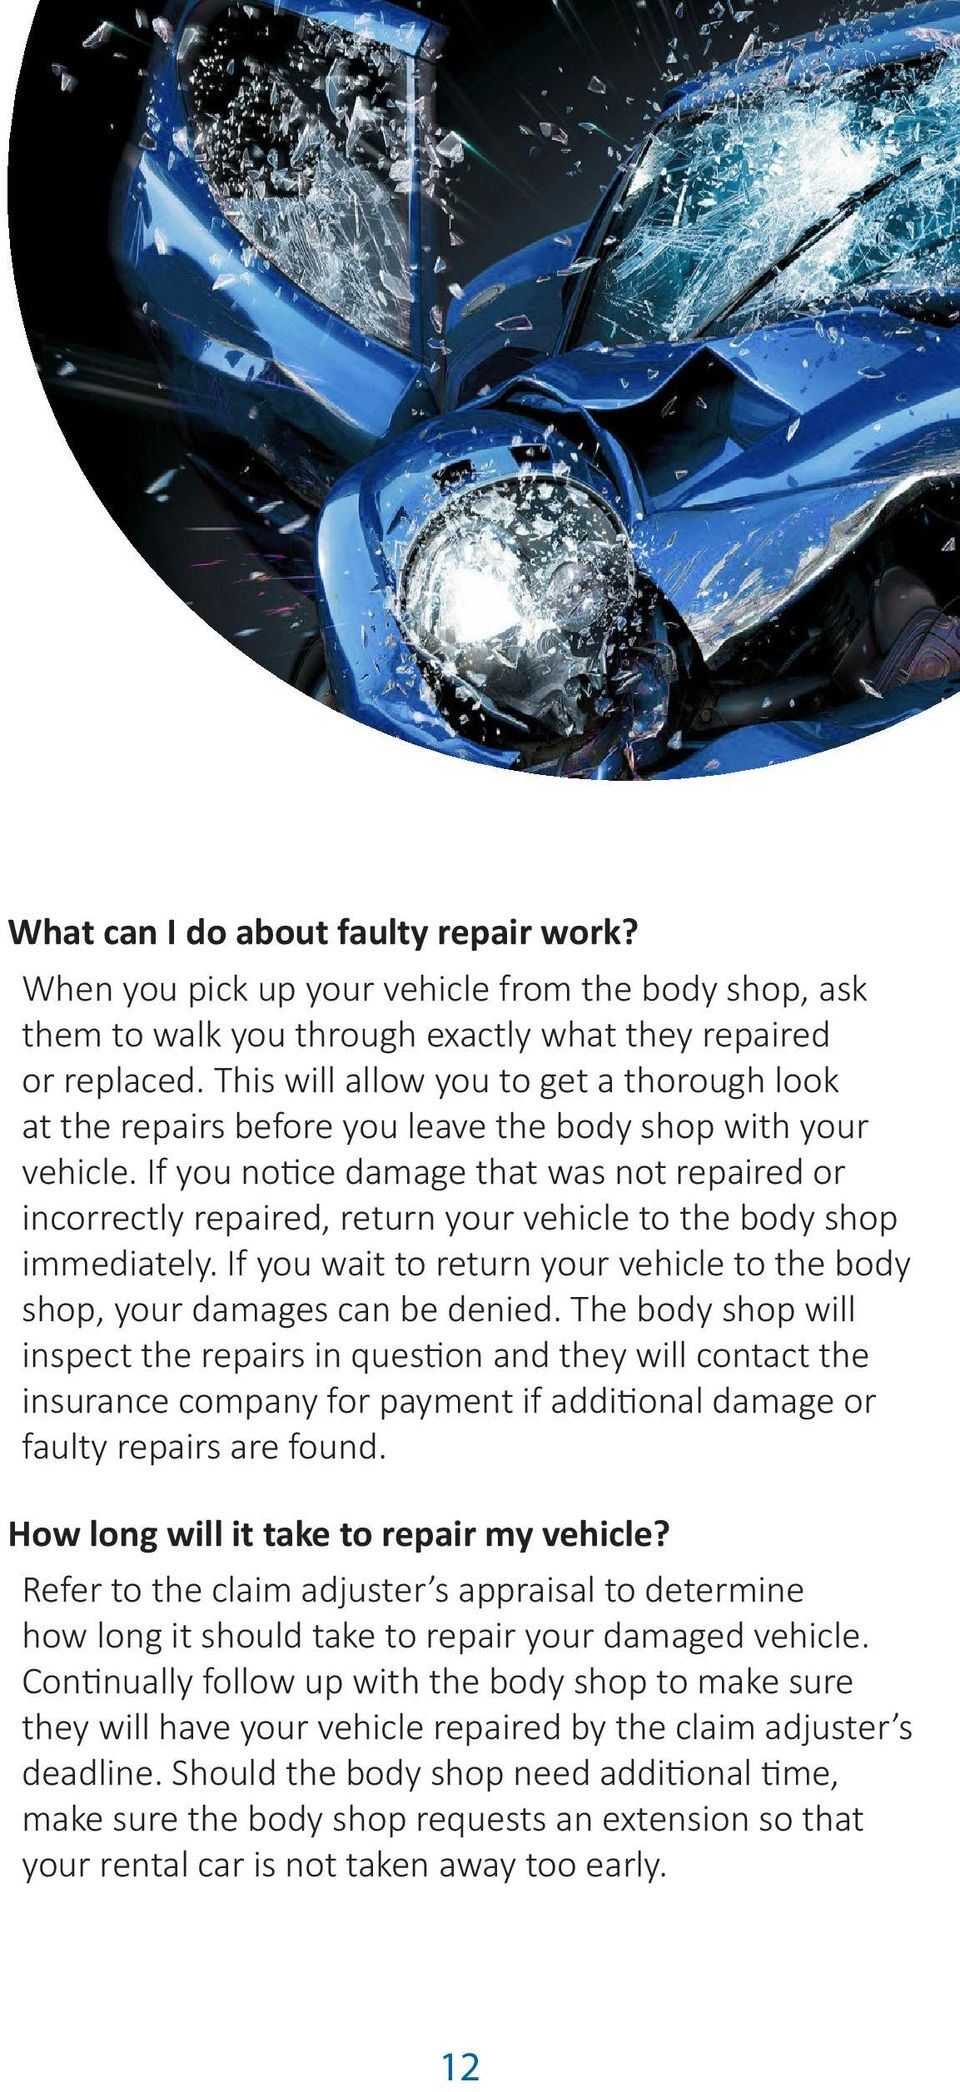 If you notice damage that was not repaired or incorrectly repaired, return your vehicle to the body shop immediately. If you wait to return your vehicle to the body shop, your damages can be denied.